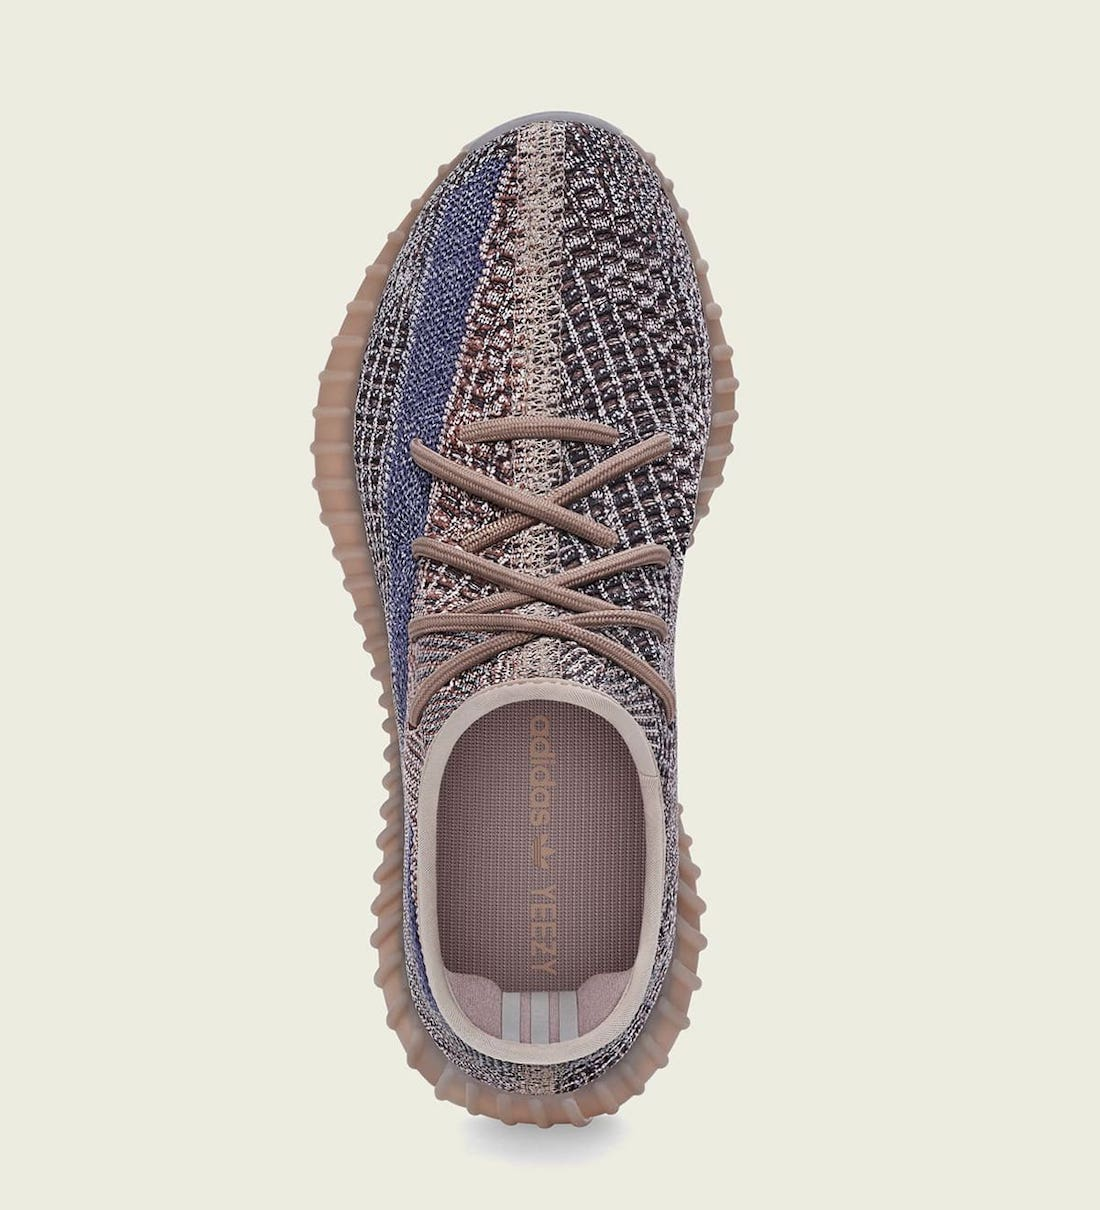 Adidas-Yeezy-Boost-350-V2-Fade-Hover-View